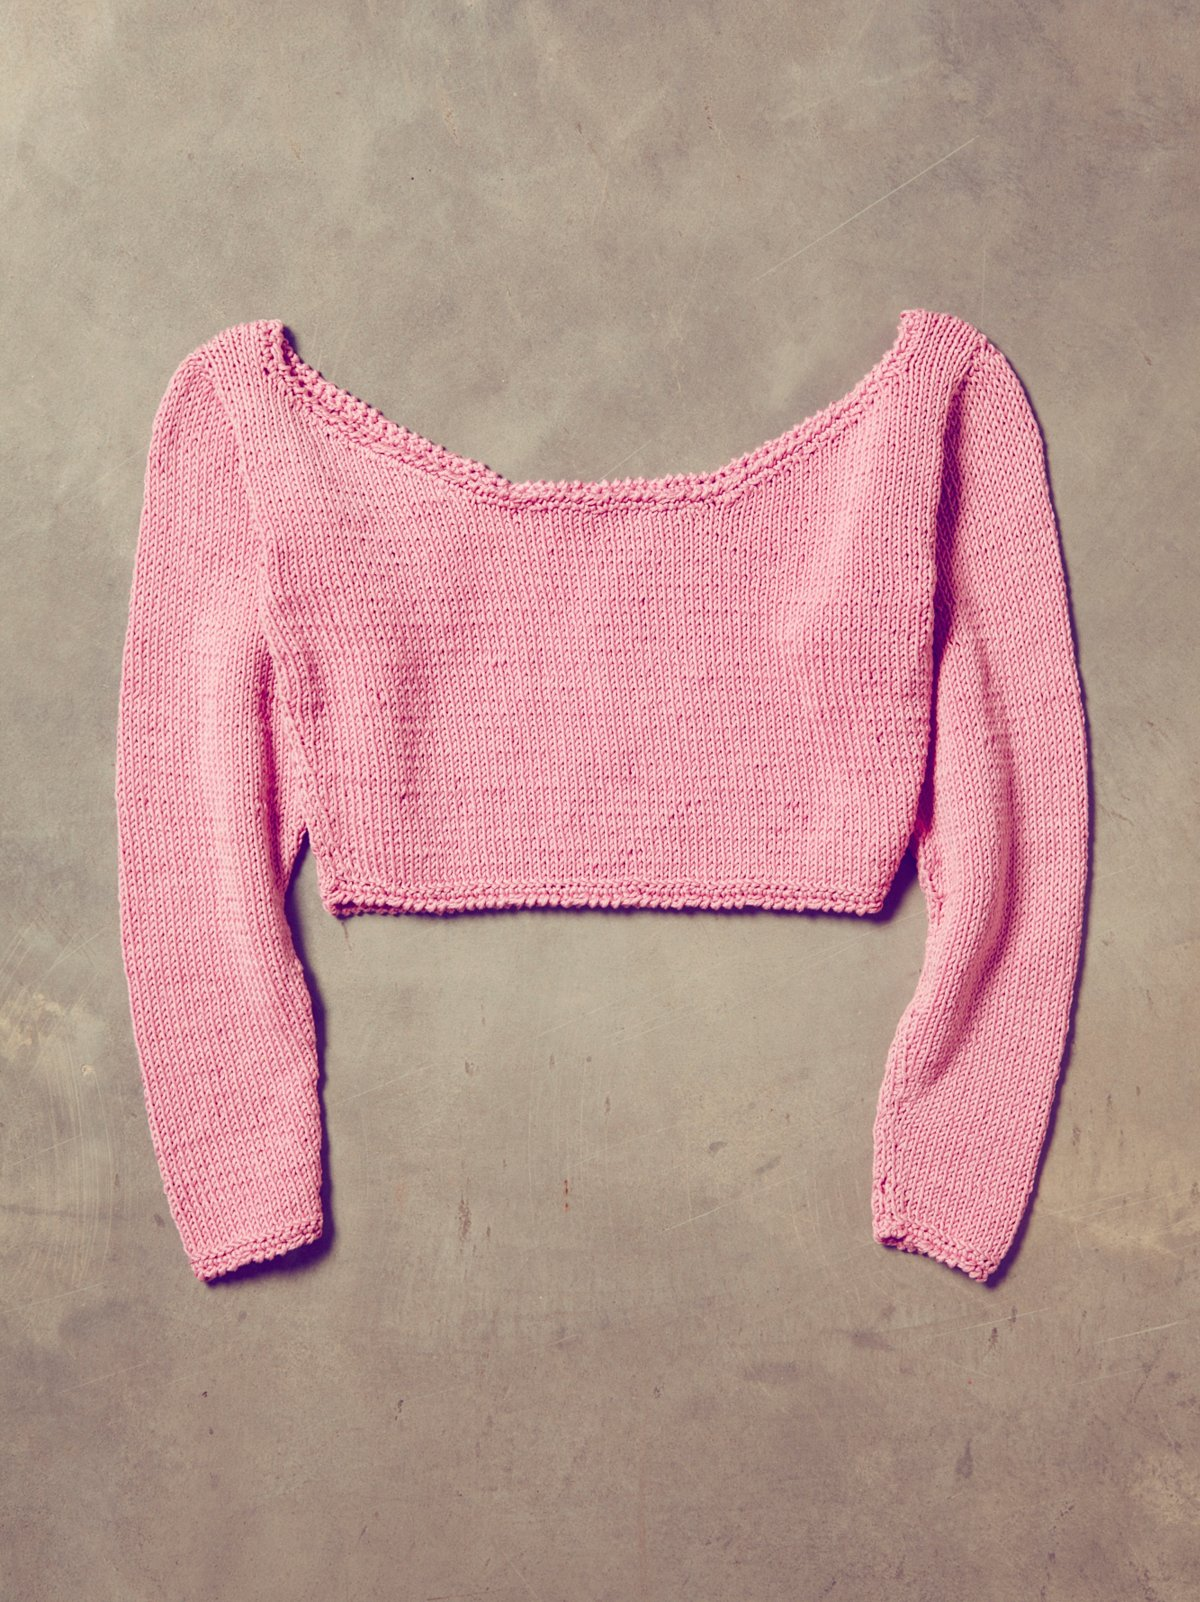 Vintage 1970s Handknit Dancer Sweater